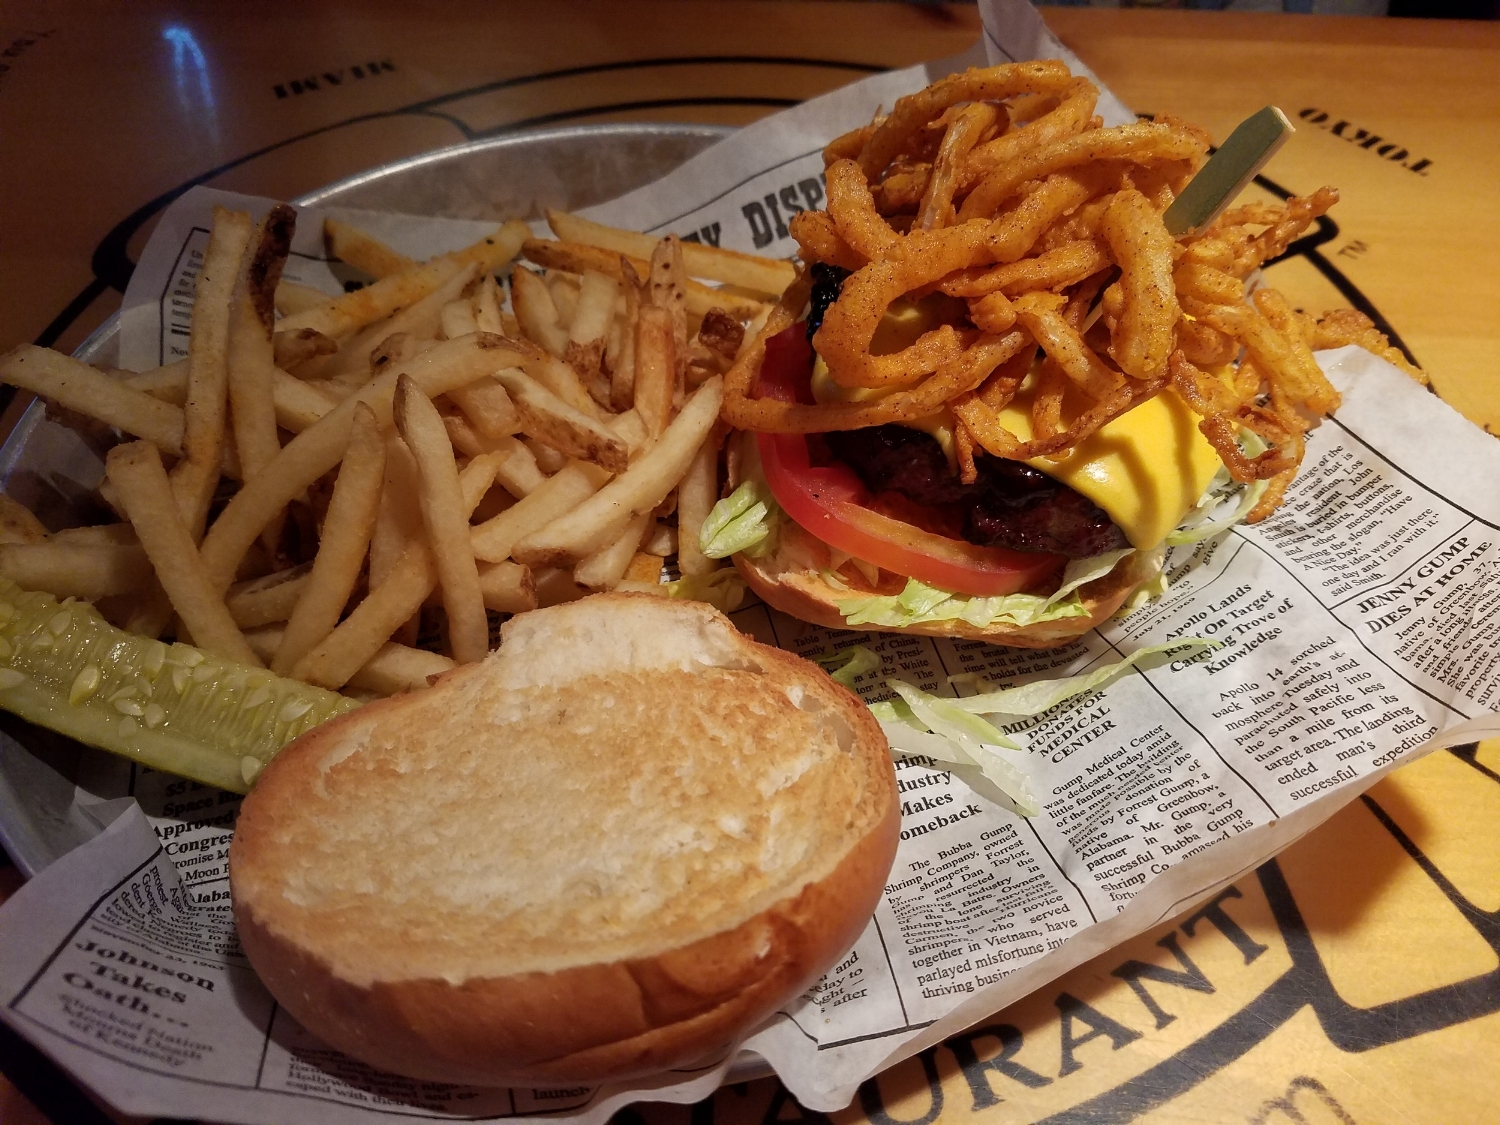 All-American BBQ Cheeseburger at Bubba Gump